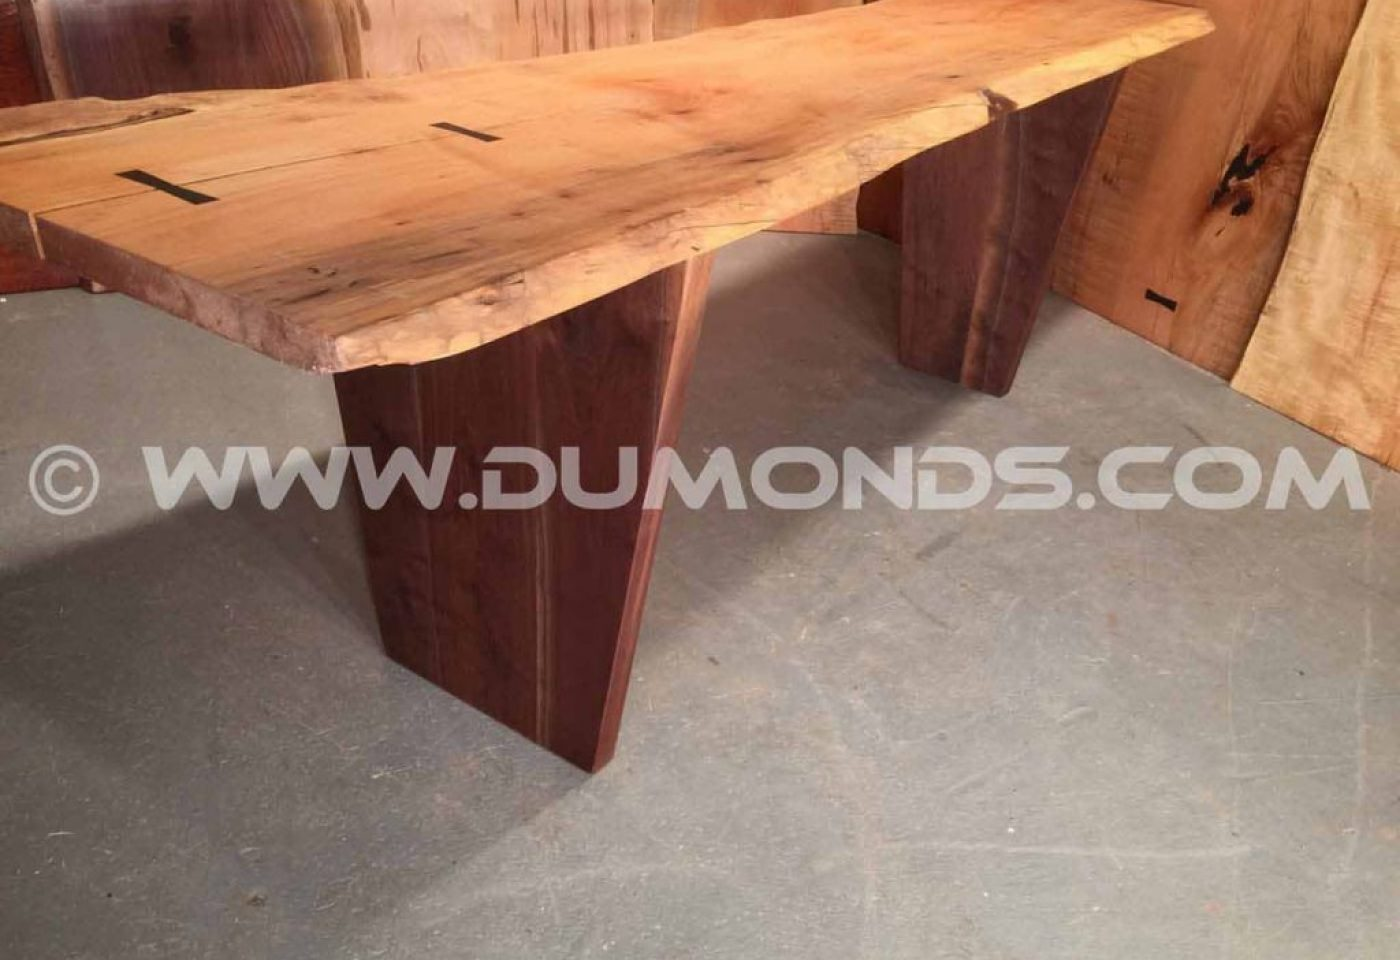 VERTICAL STRAIGHT WALNUT TABLE LEGS WITH TAPERED SIDES